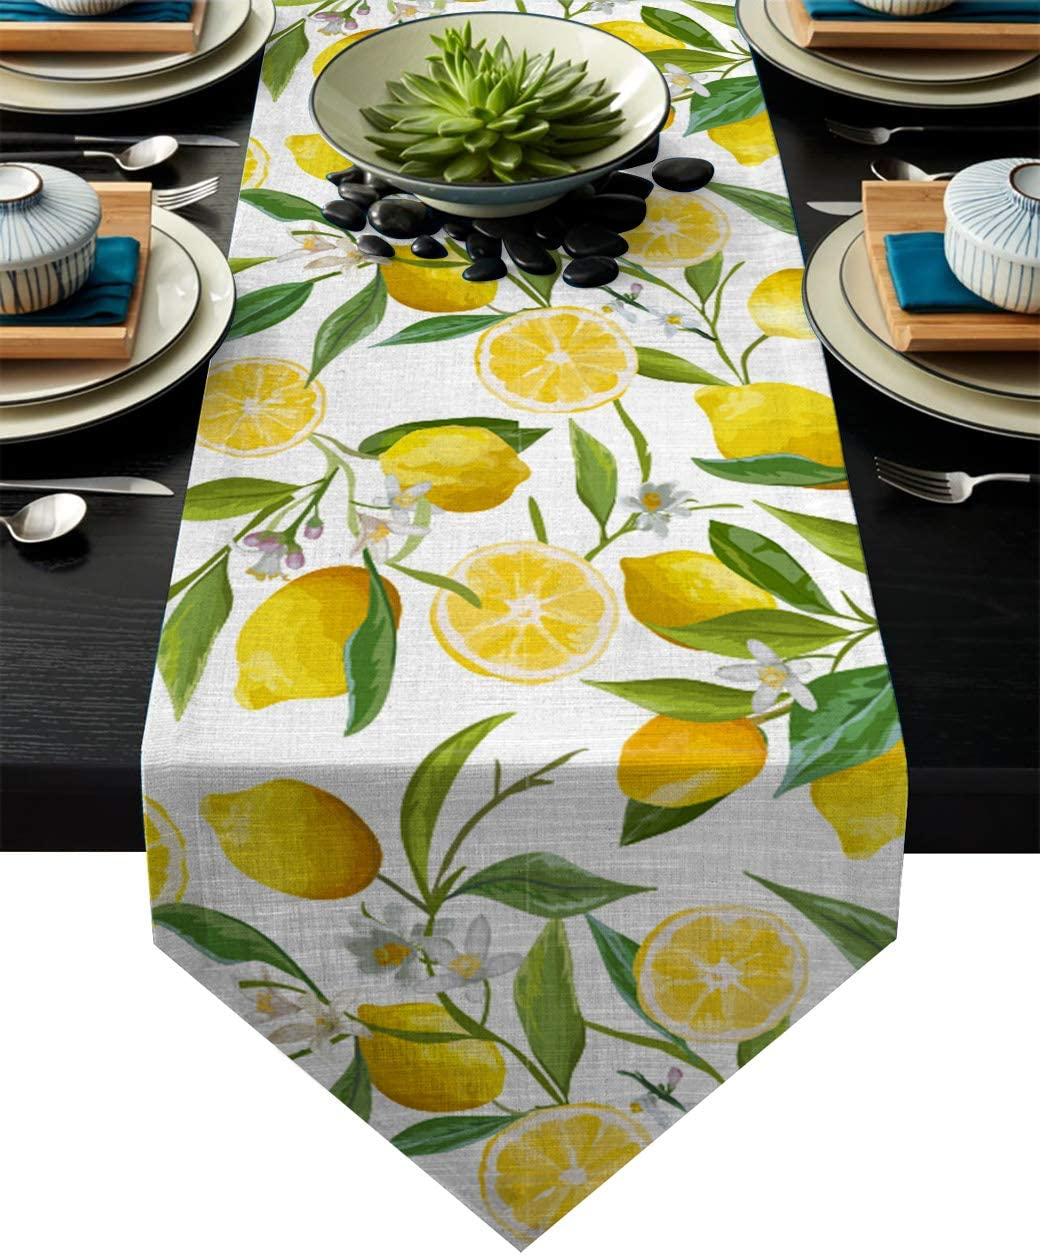 AmbeArt Luxury Table Runner for Dinning Hall/Banquet/Party 14 x 72 Inch, Yellow Lemons Natural Furit and Green Leaves Pattern - Modern Geometric Table Runner Holiday Dinner Home Decor, Triangle Trim